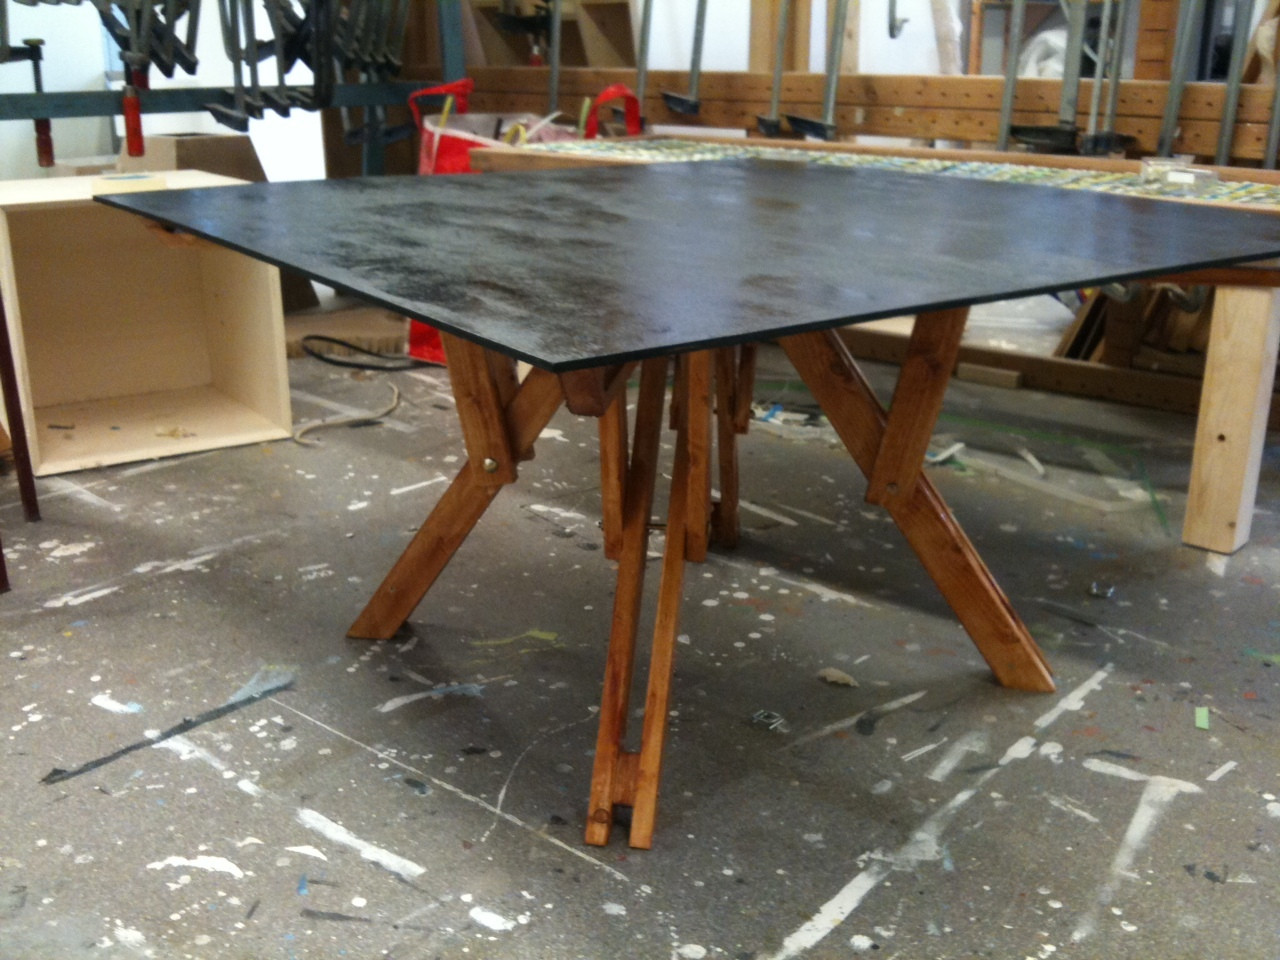 Best ideas about DIY Folding Table . Save or Pin Folding coffee table Now.